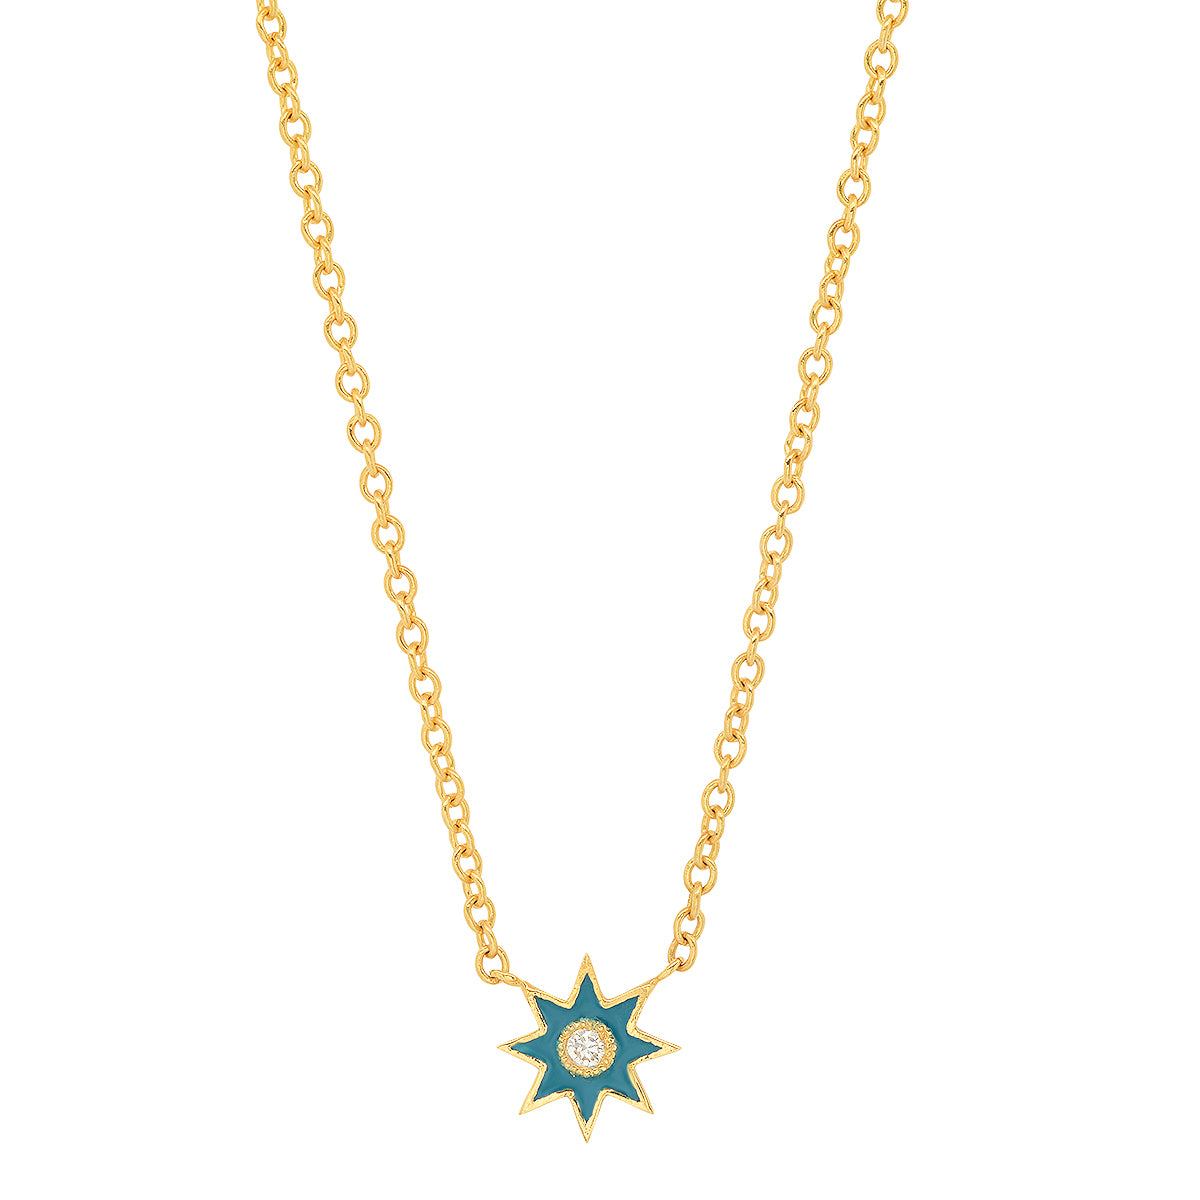 Single Star Enamel Pendant - Three Colors